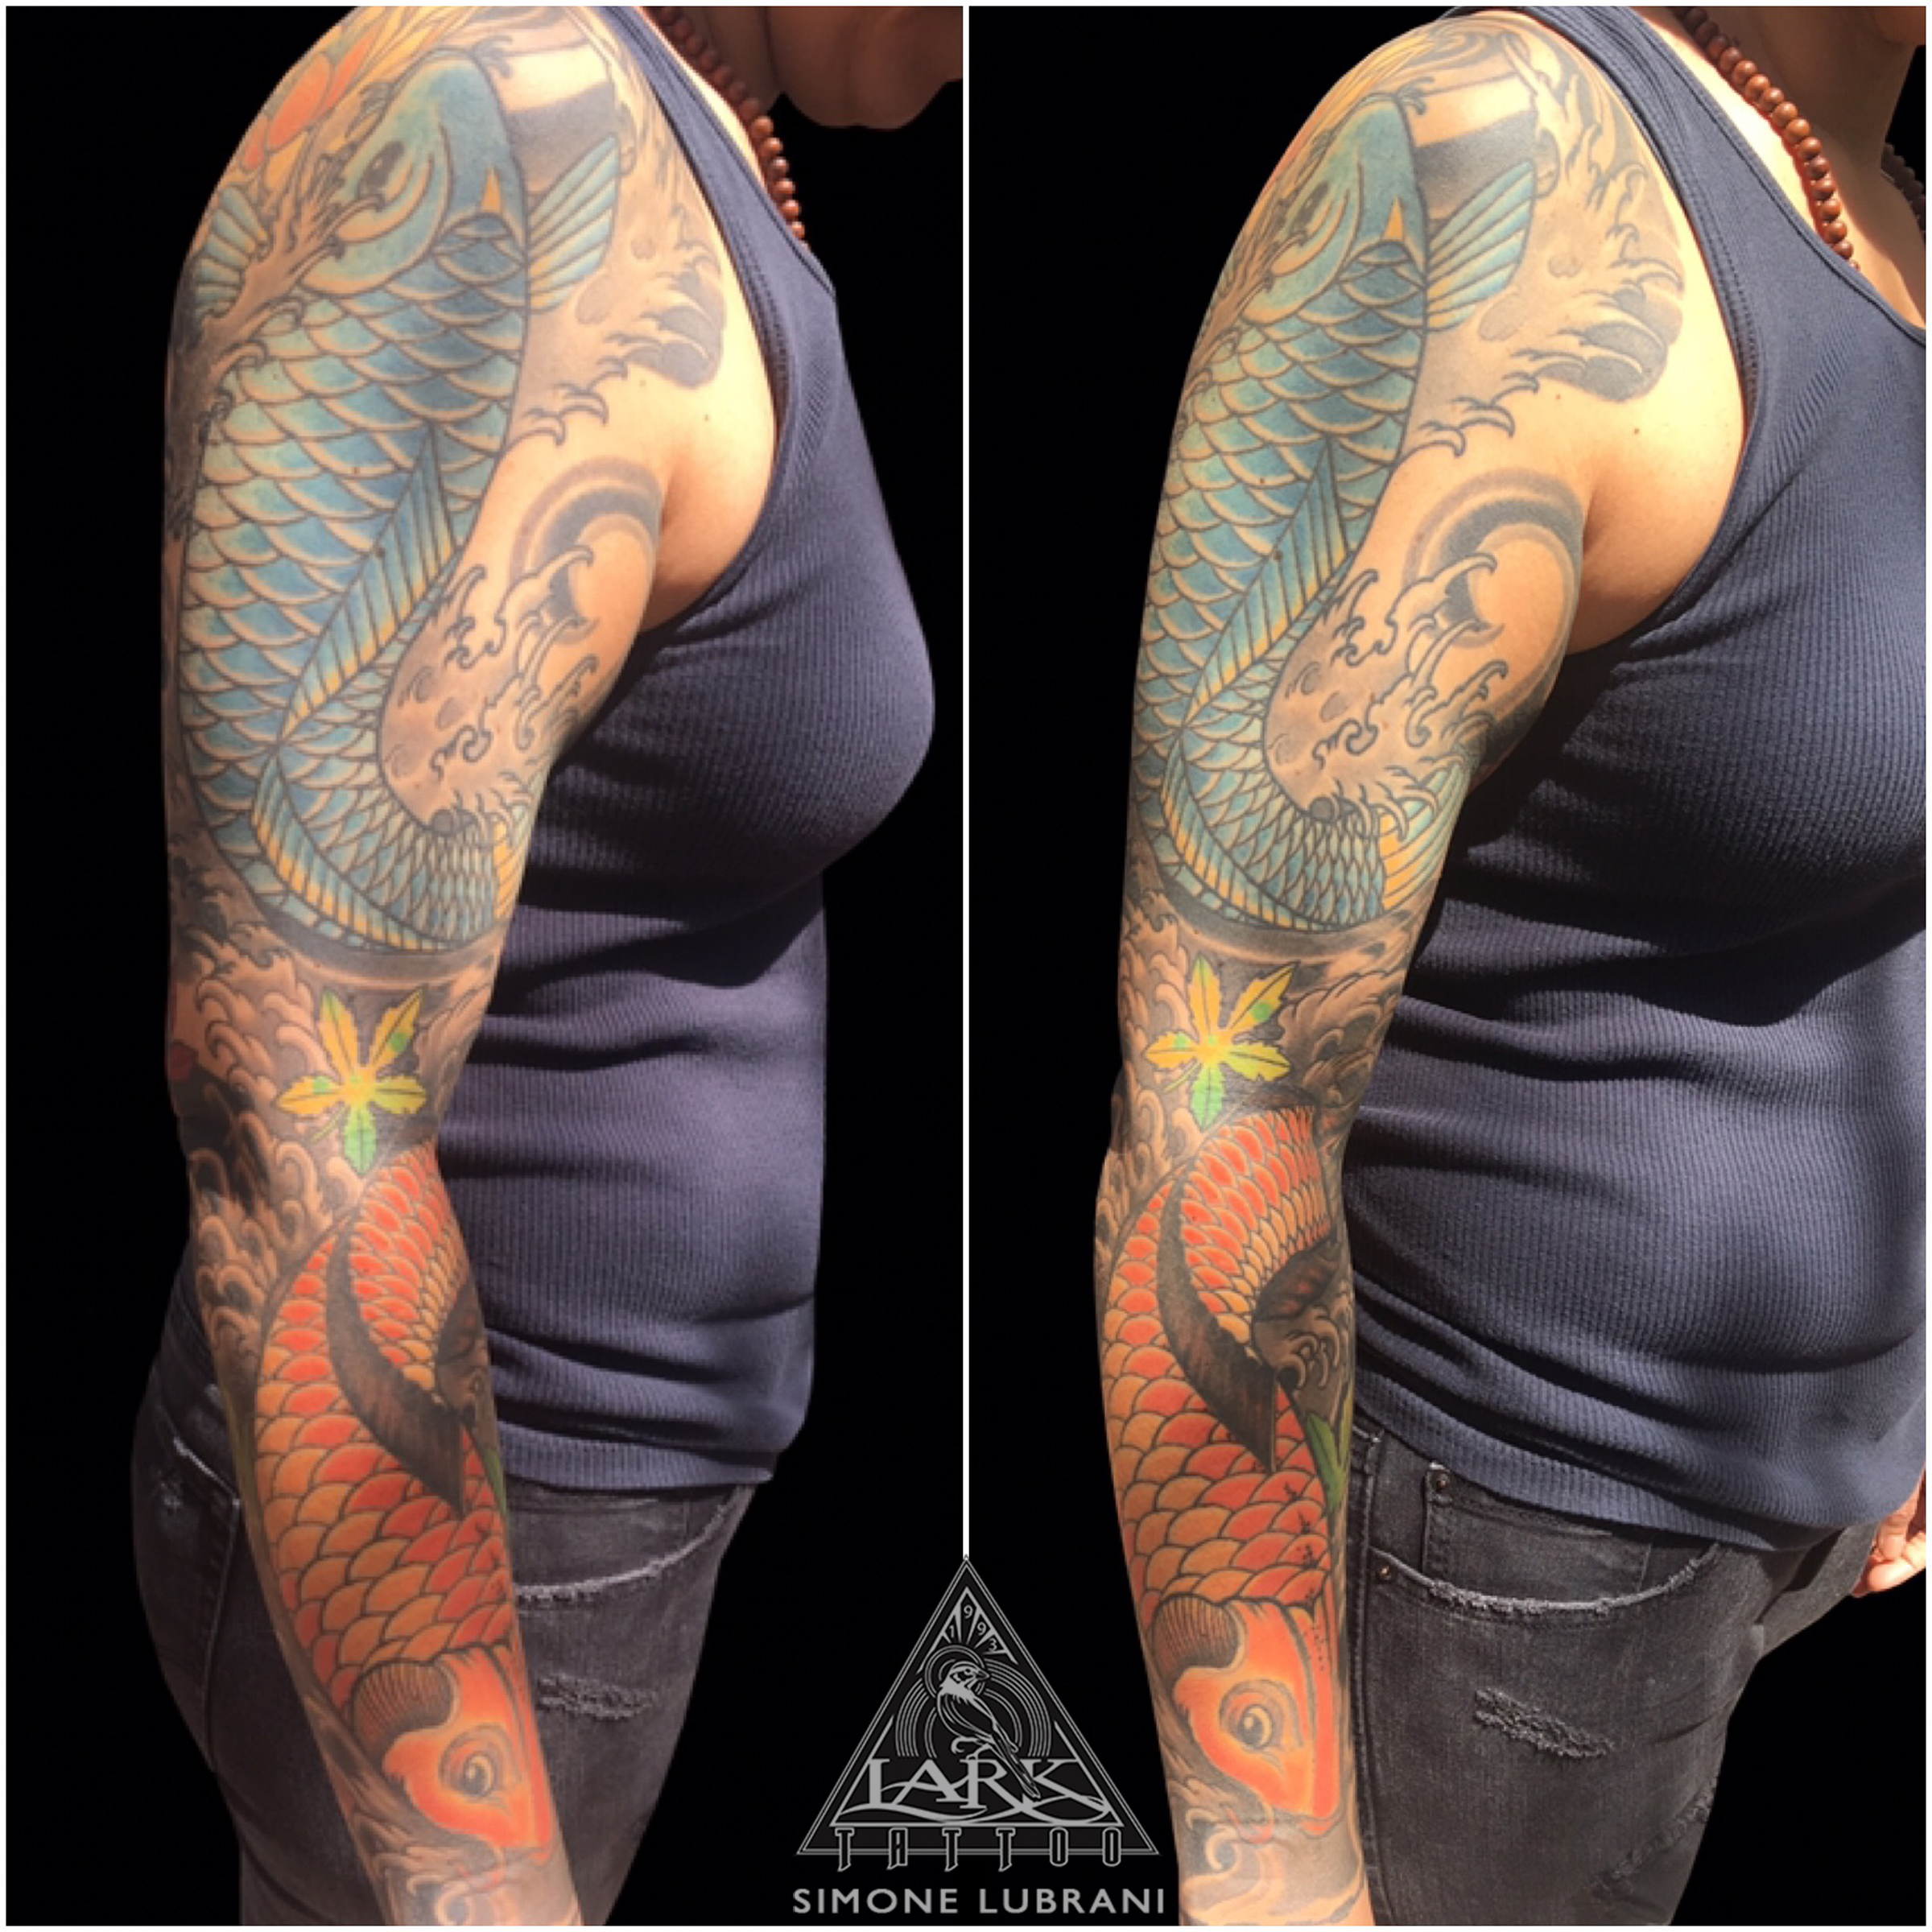 #LarkTattoo #LongIslandTattooer #LongIslandArtist #ColorTattoo #TattooSleeve #JapaneseTattoo #Koi #KoiTattoo #Tattoo #Tattoos #Tat #Tats #Tatts #Tatted #Tattedup #Tattoist #Tattooed #Inked #InkedUp #Ink #TattooOfTheDay #AmazingInk #BodyArt #LarkTattoos #LarkTattooWestbury #Westbury #LongIsland #NY #NewYork #USA #Art